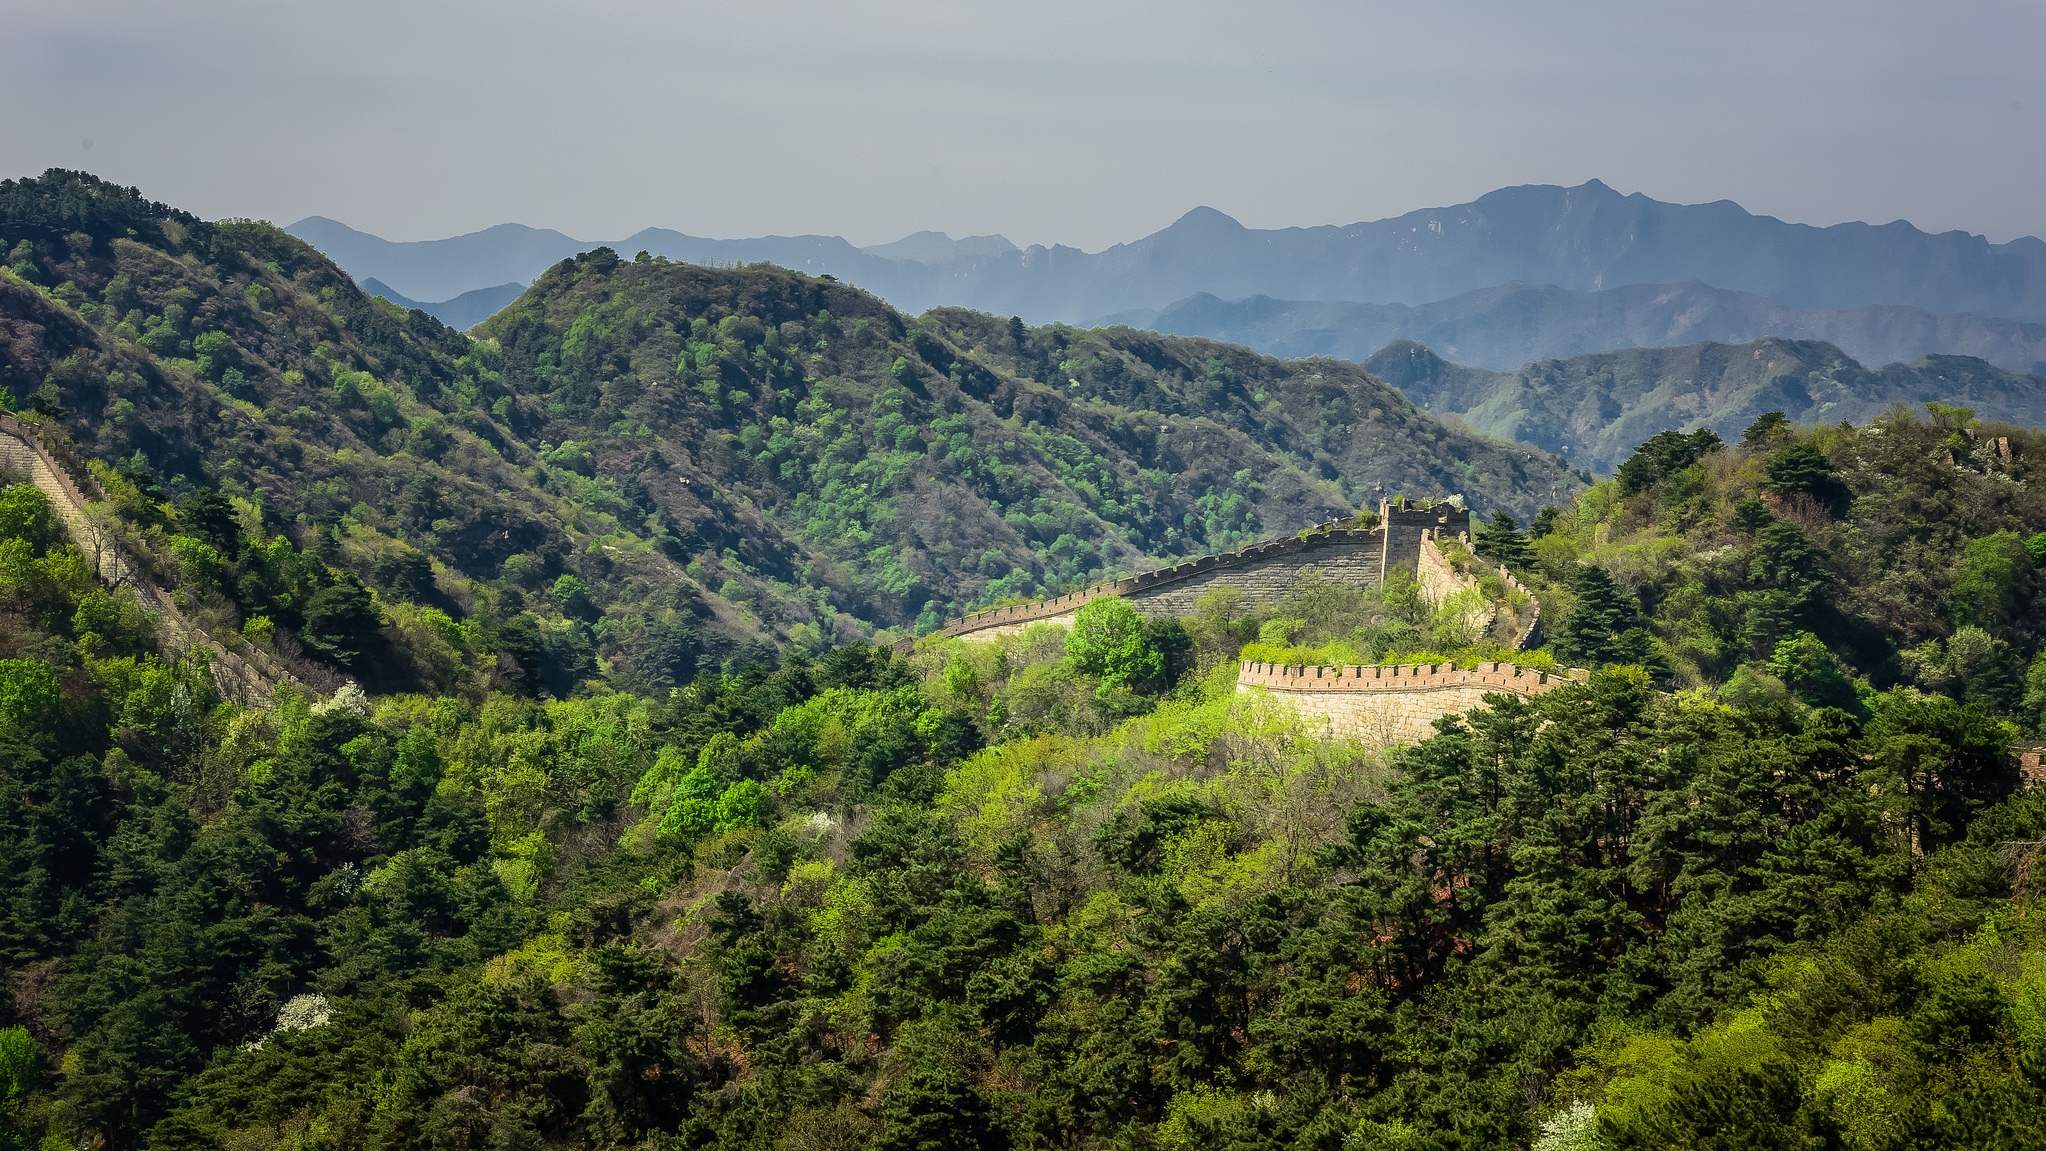 Aerial view of the Great Wall in Beijing, China